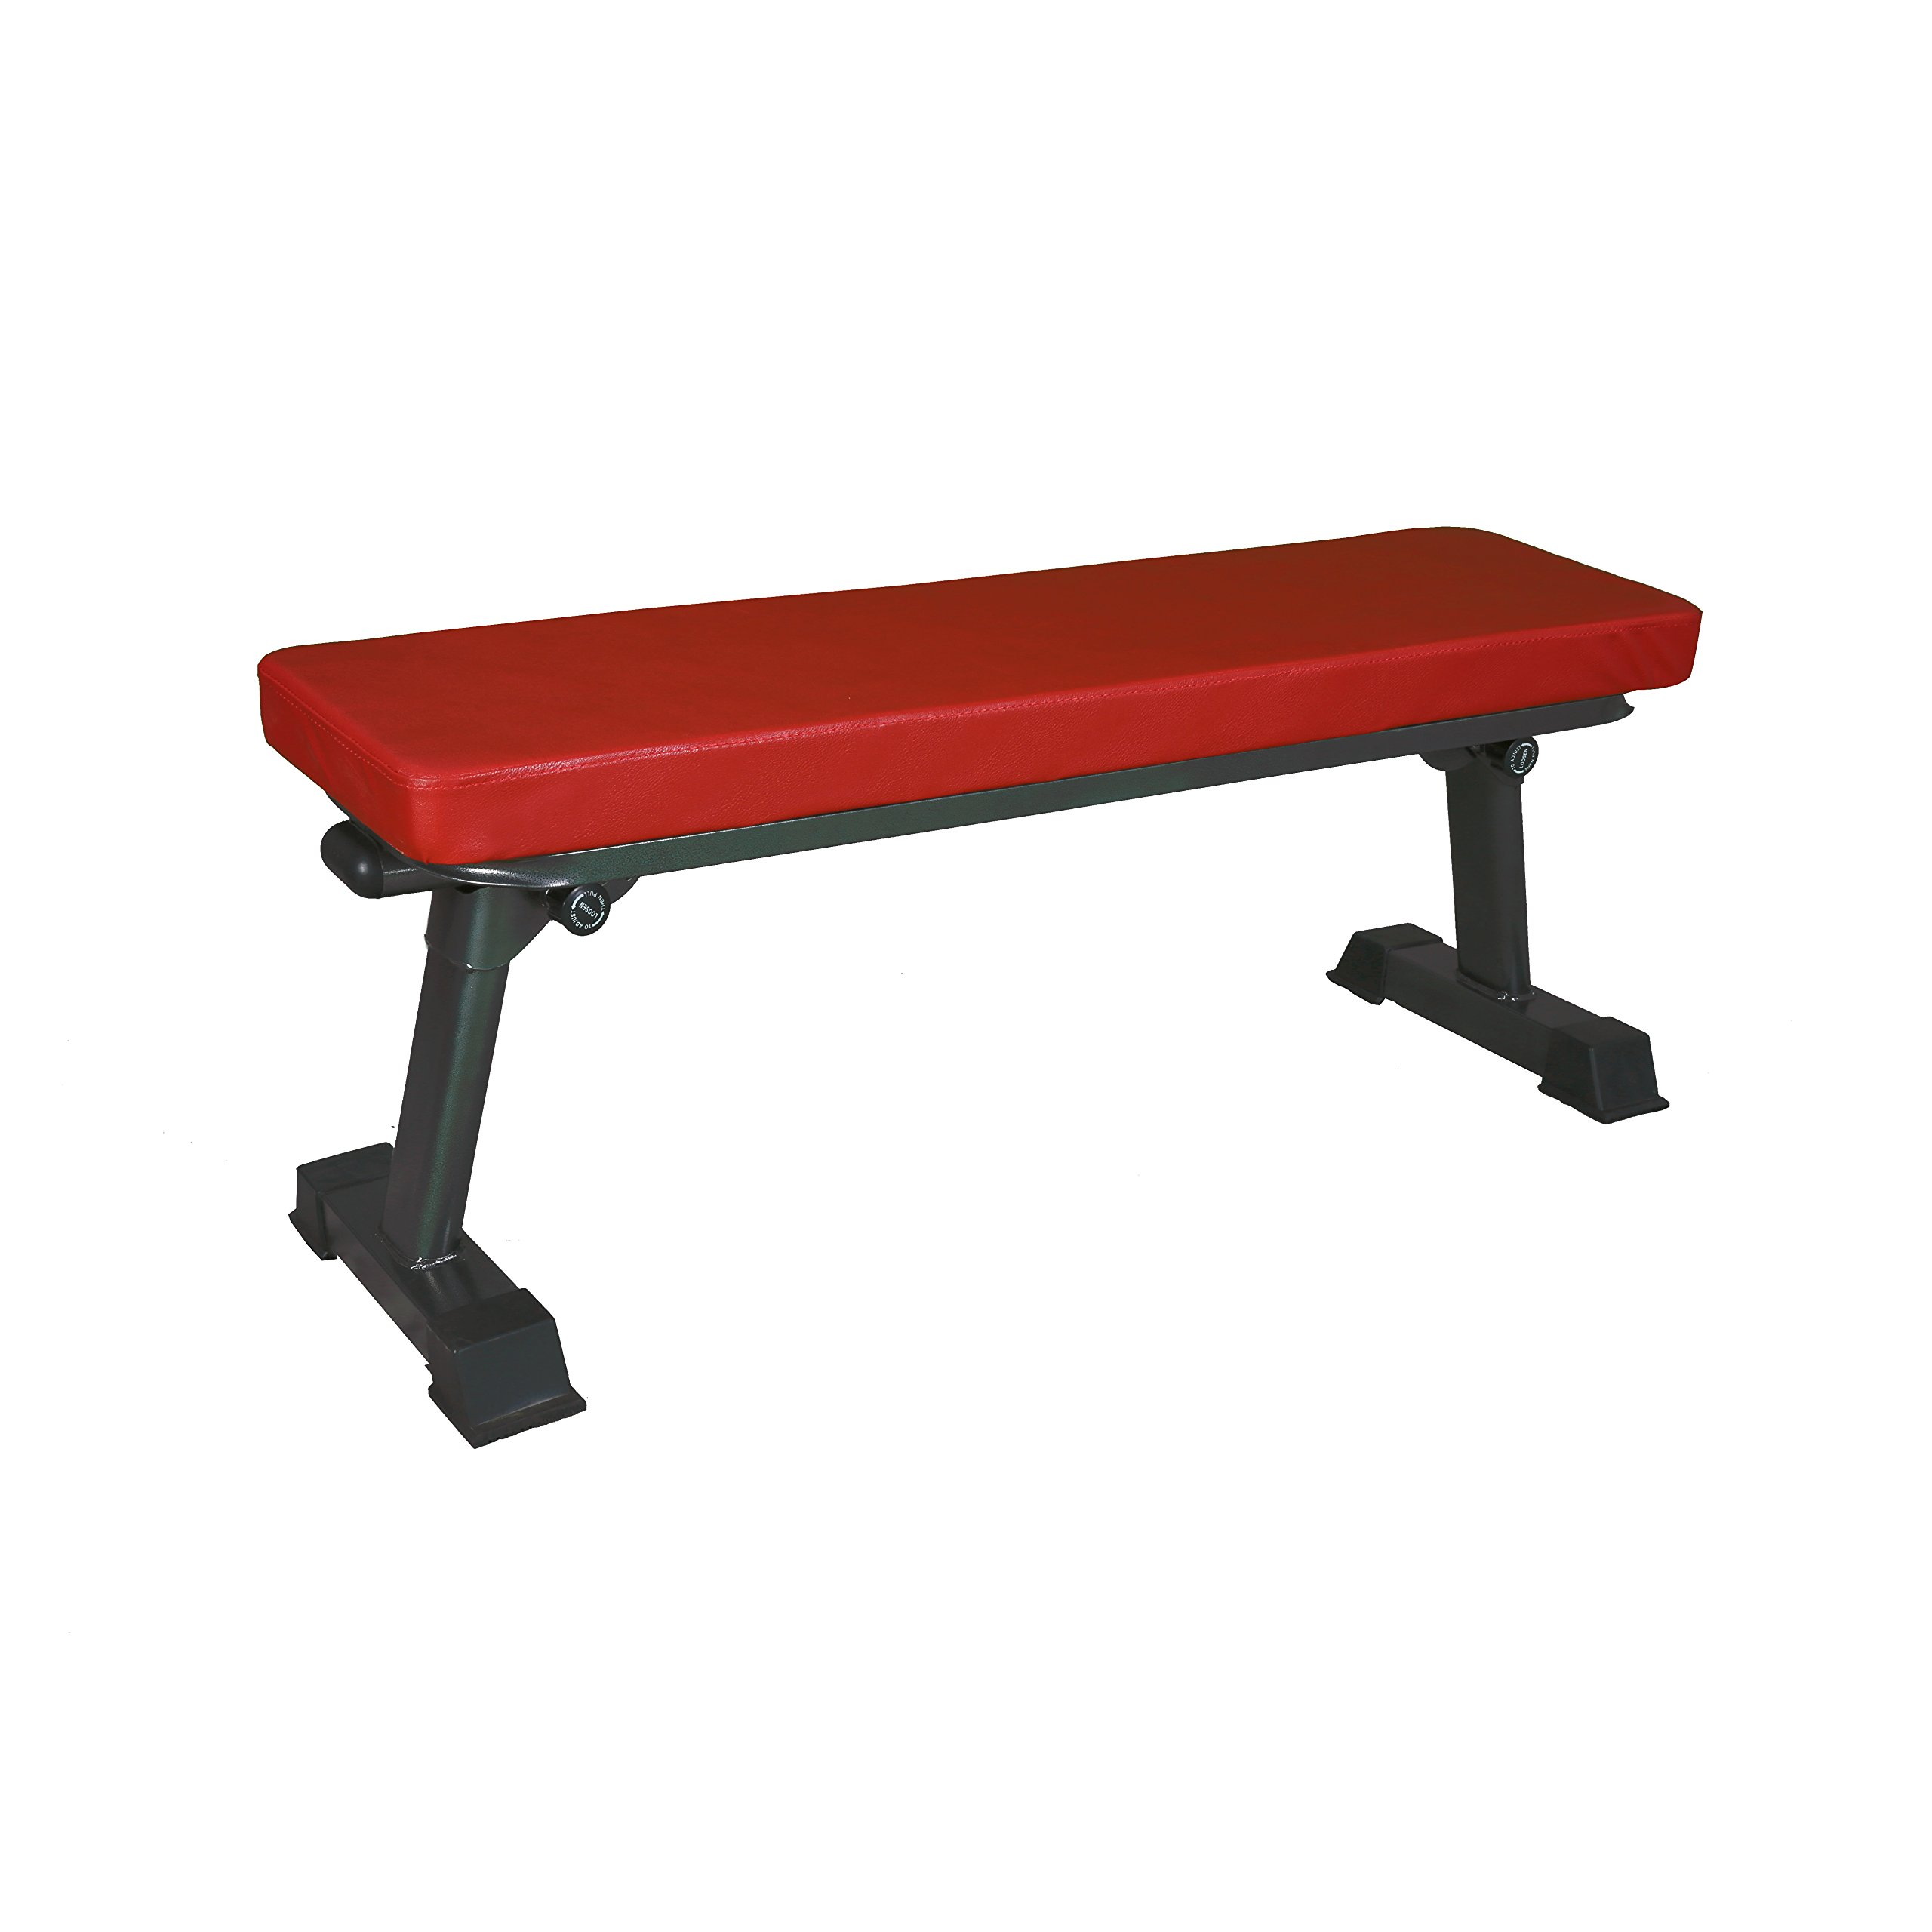 Finer Form Gym Quality Foldable Flat Bench for Multi-Purpose Weight Training and Ab Exercises (Red) by FF Finer Form